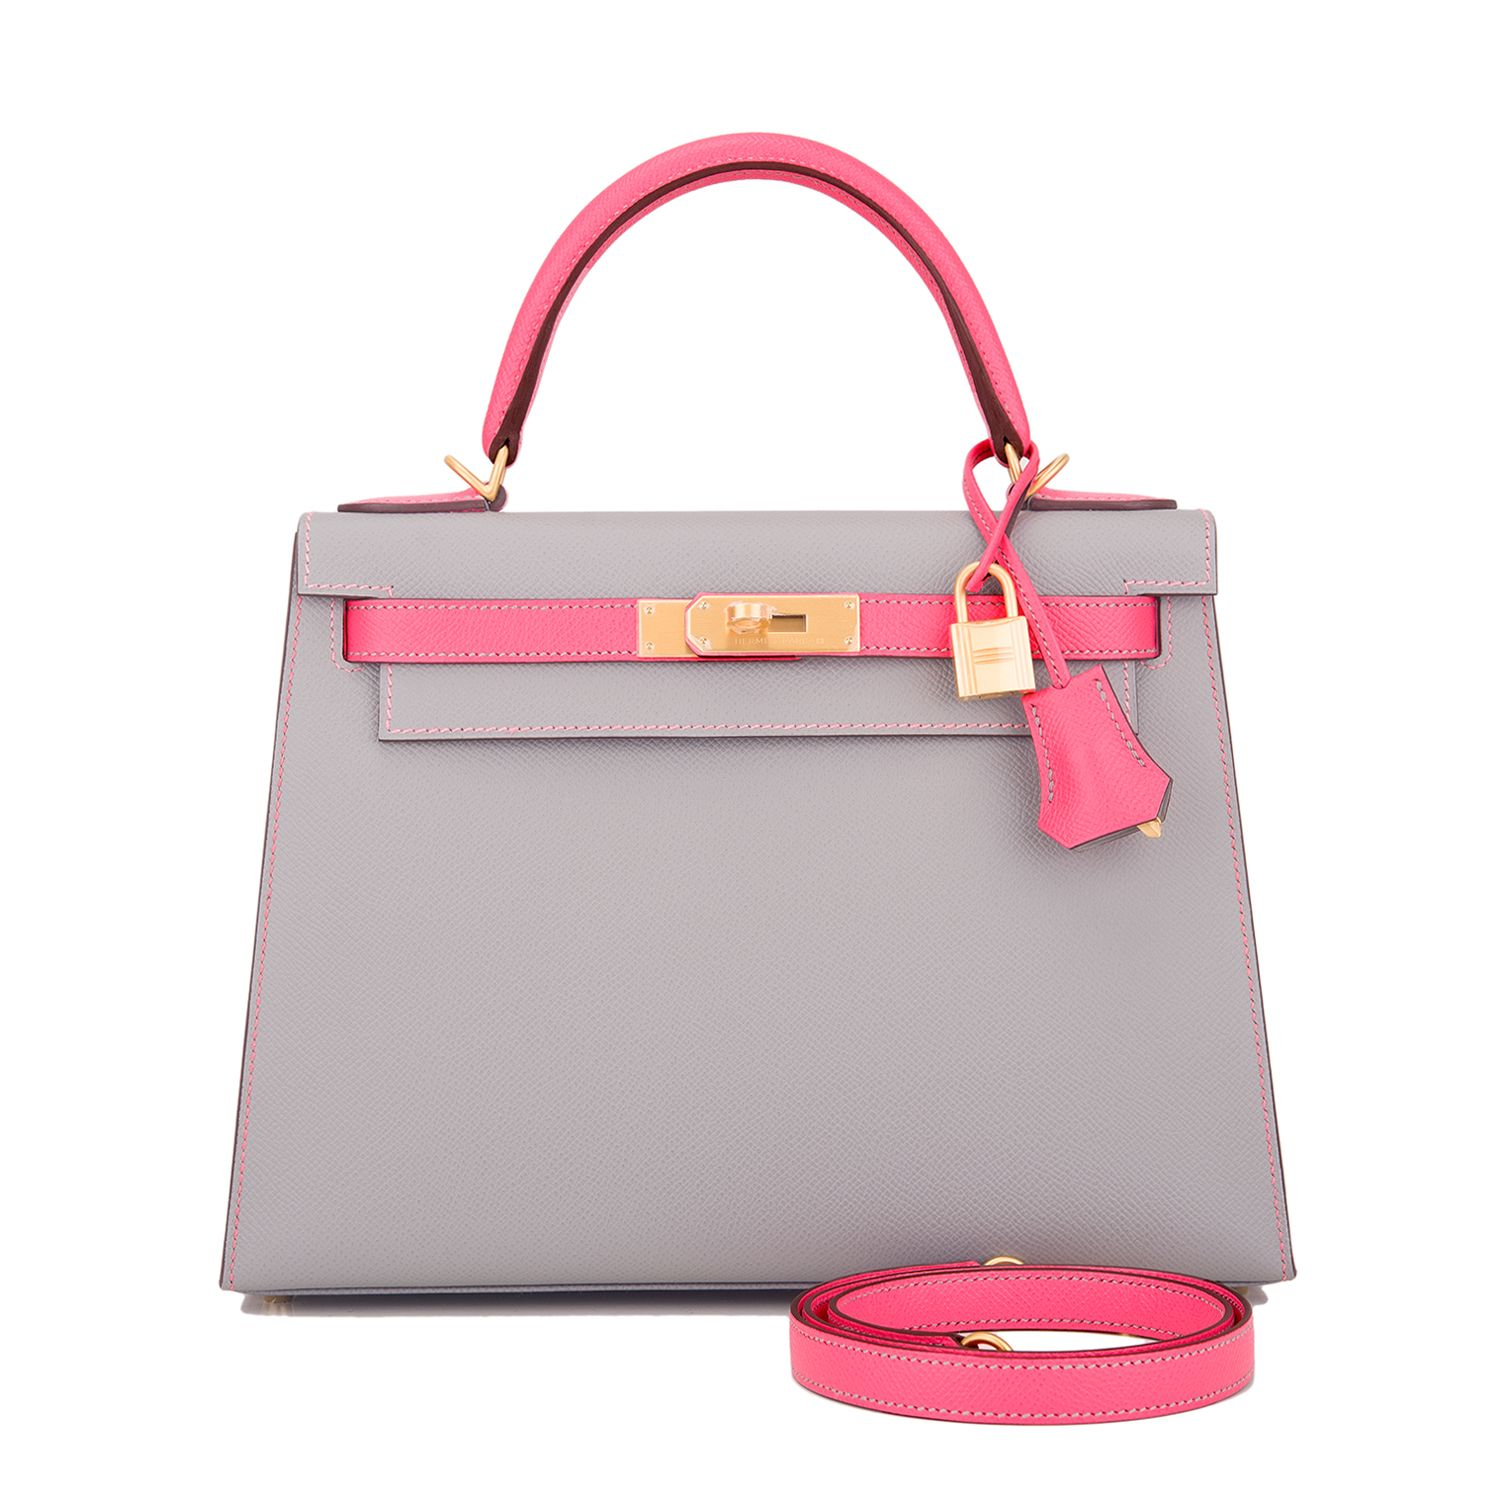 36f71e7297d Hermes Sellier Kelly Bag 28cm HSS Bi-Color Gris Mouette and Rose Azalea  Epsom Brushed Gold Hardware Image 1